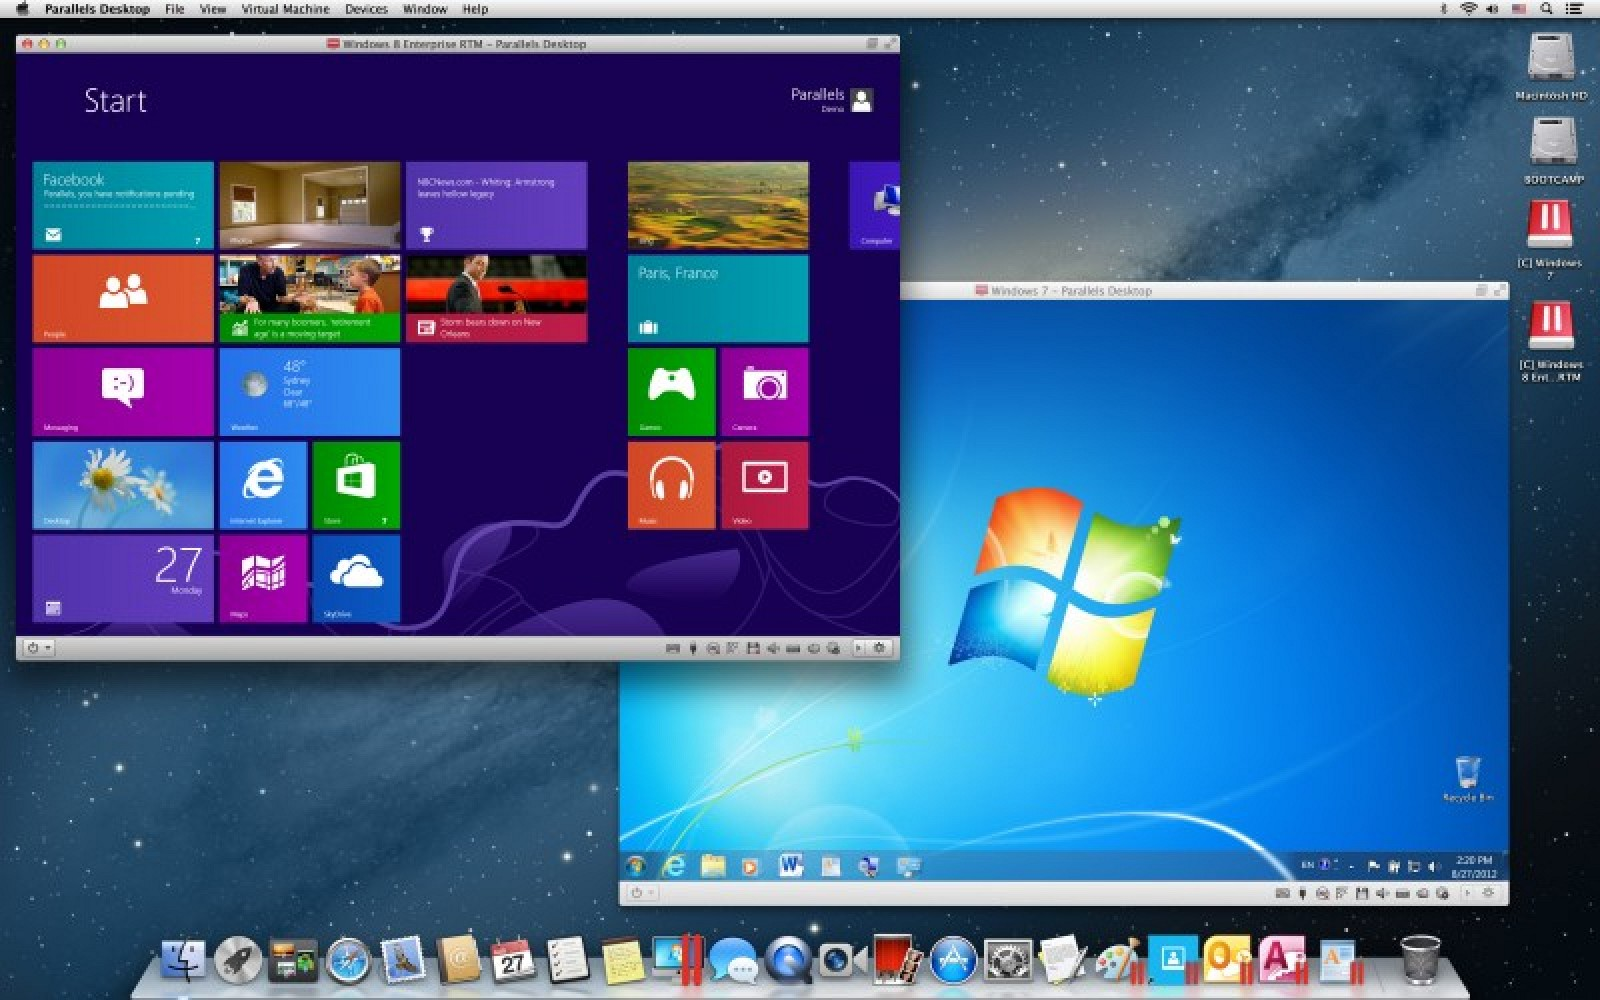 Black Friday Car Deals >> Apple Retail Stores to Encourage Mac Business Usage with Parallels Desktop, Parallels 9 Pre ...